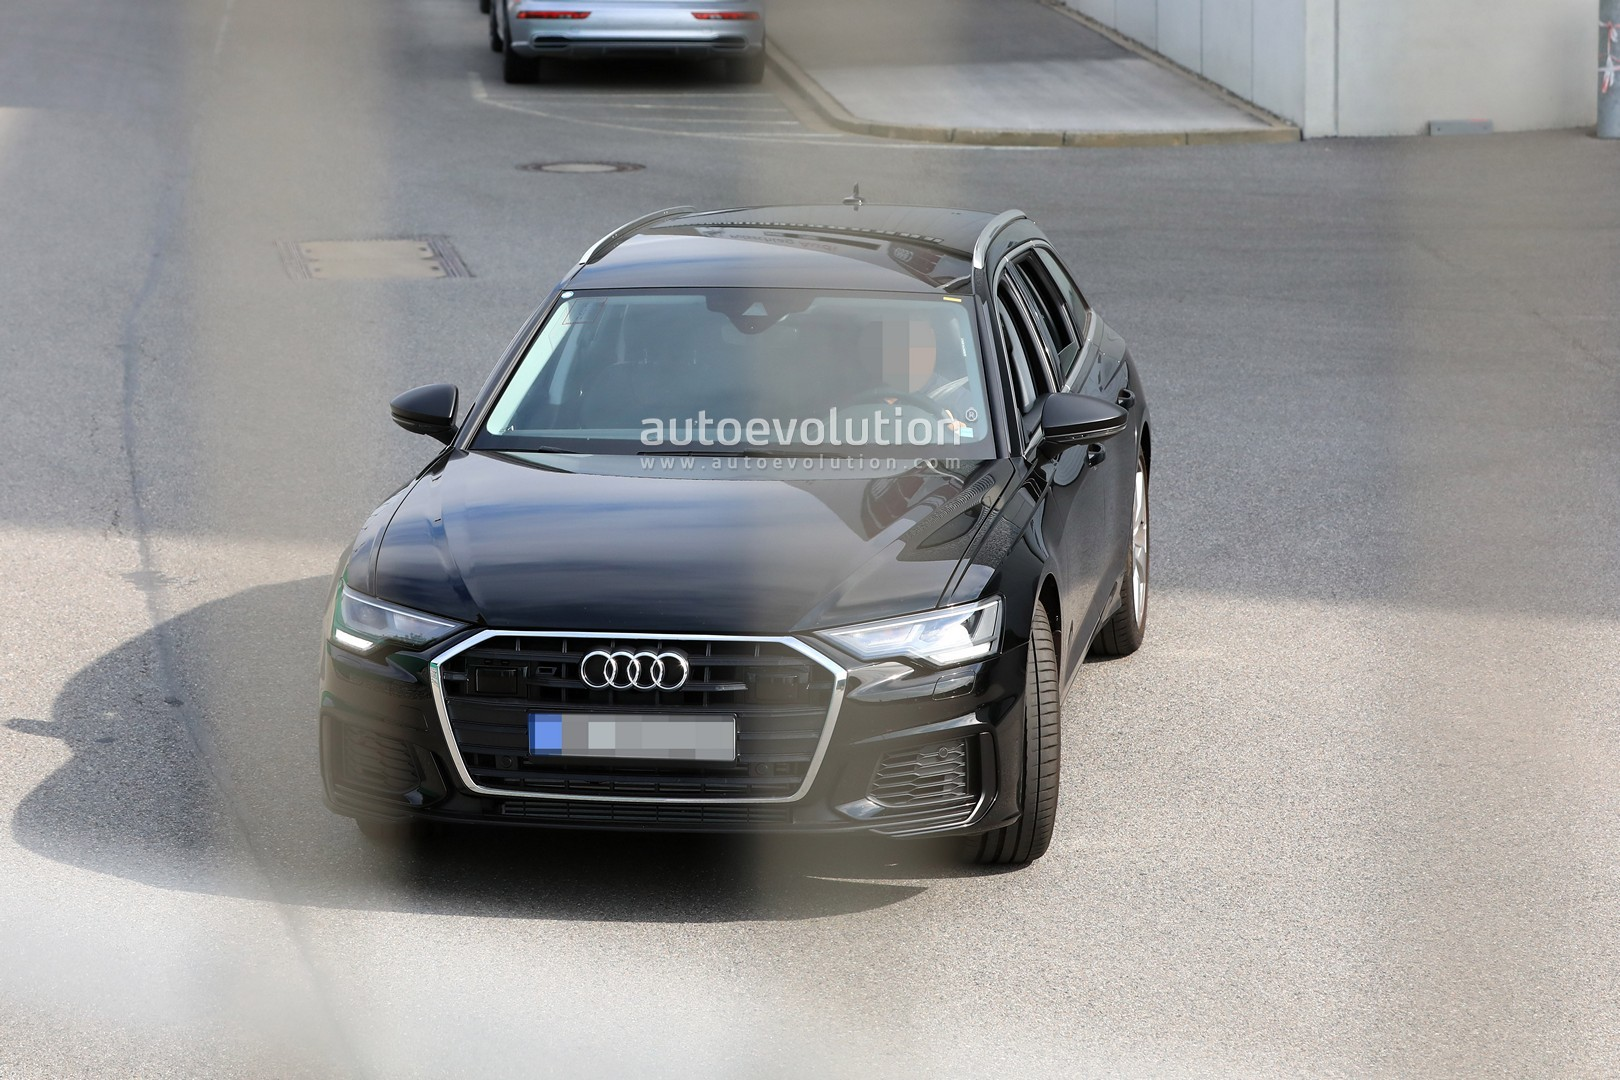 2017 - [Audi] A6 Berline & Avant [C8] - Page 10 2020-audi-s6-avant-spied-with-no-camo-looks-very-understated_2